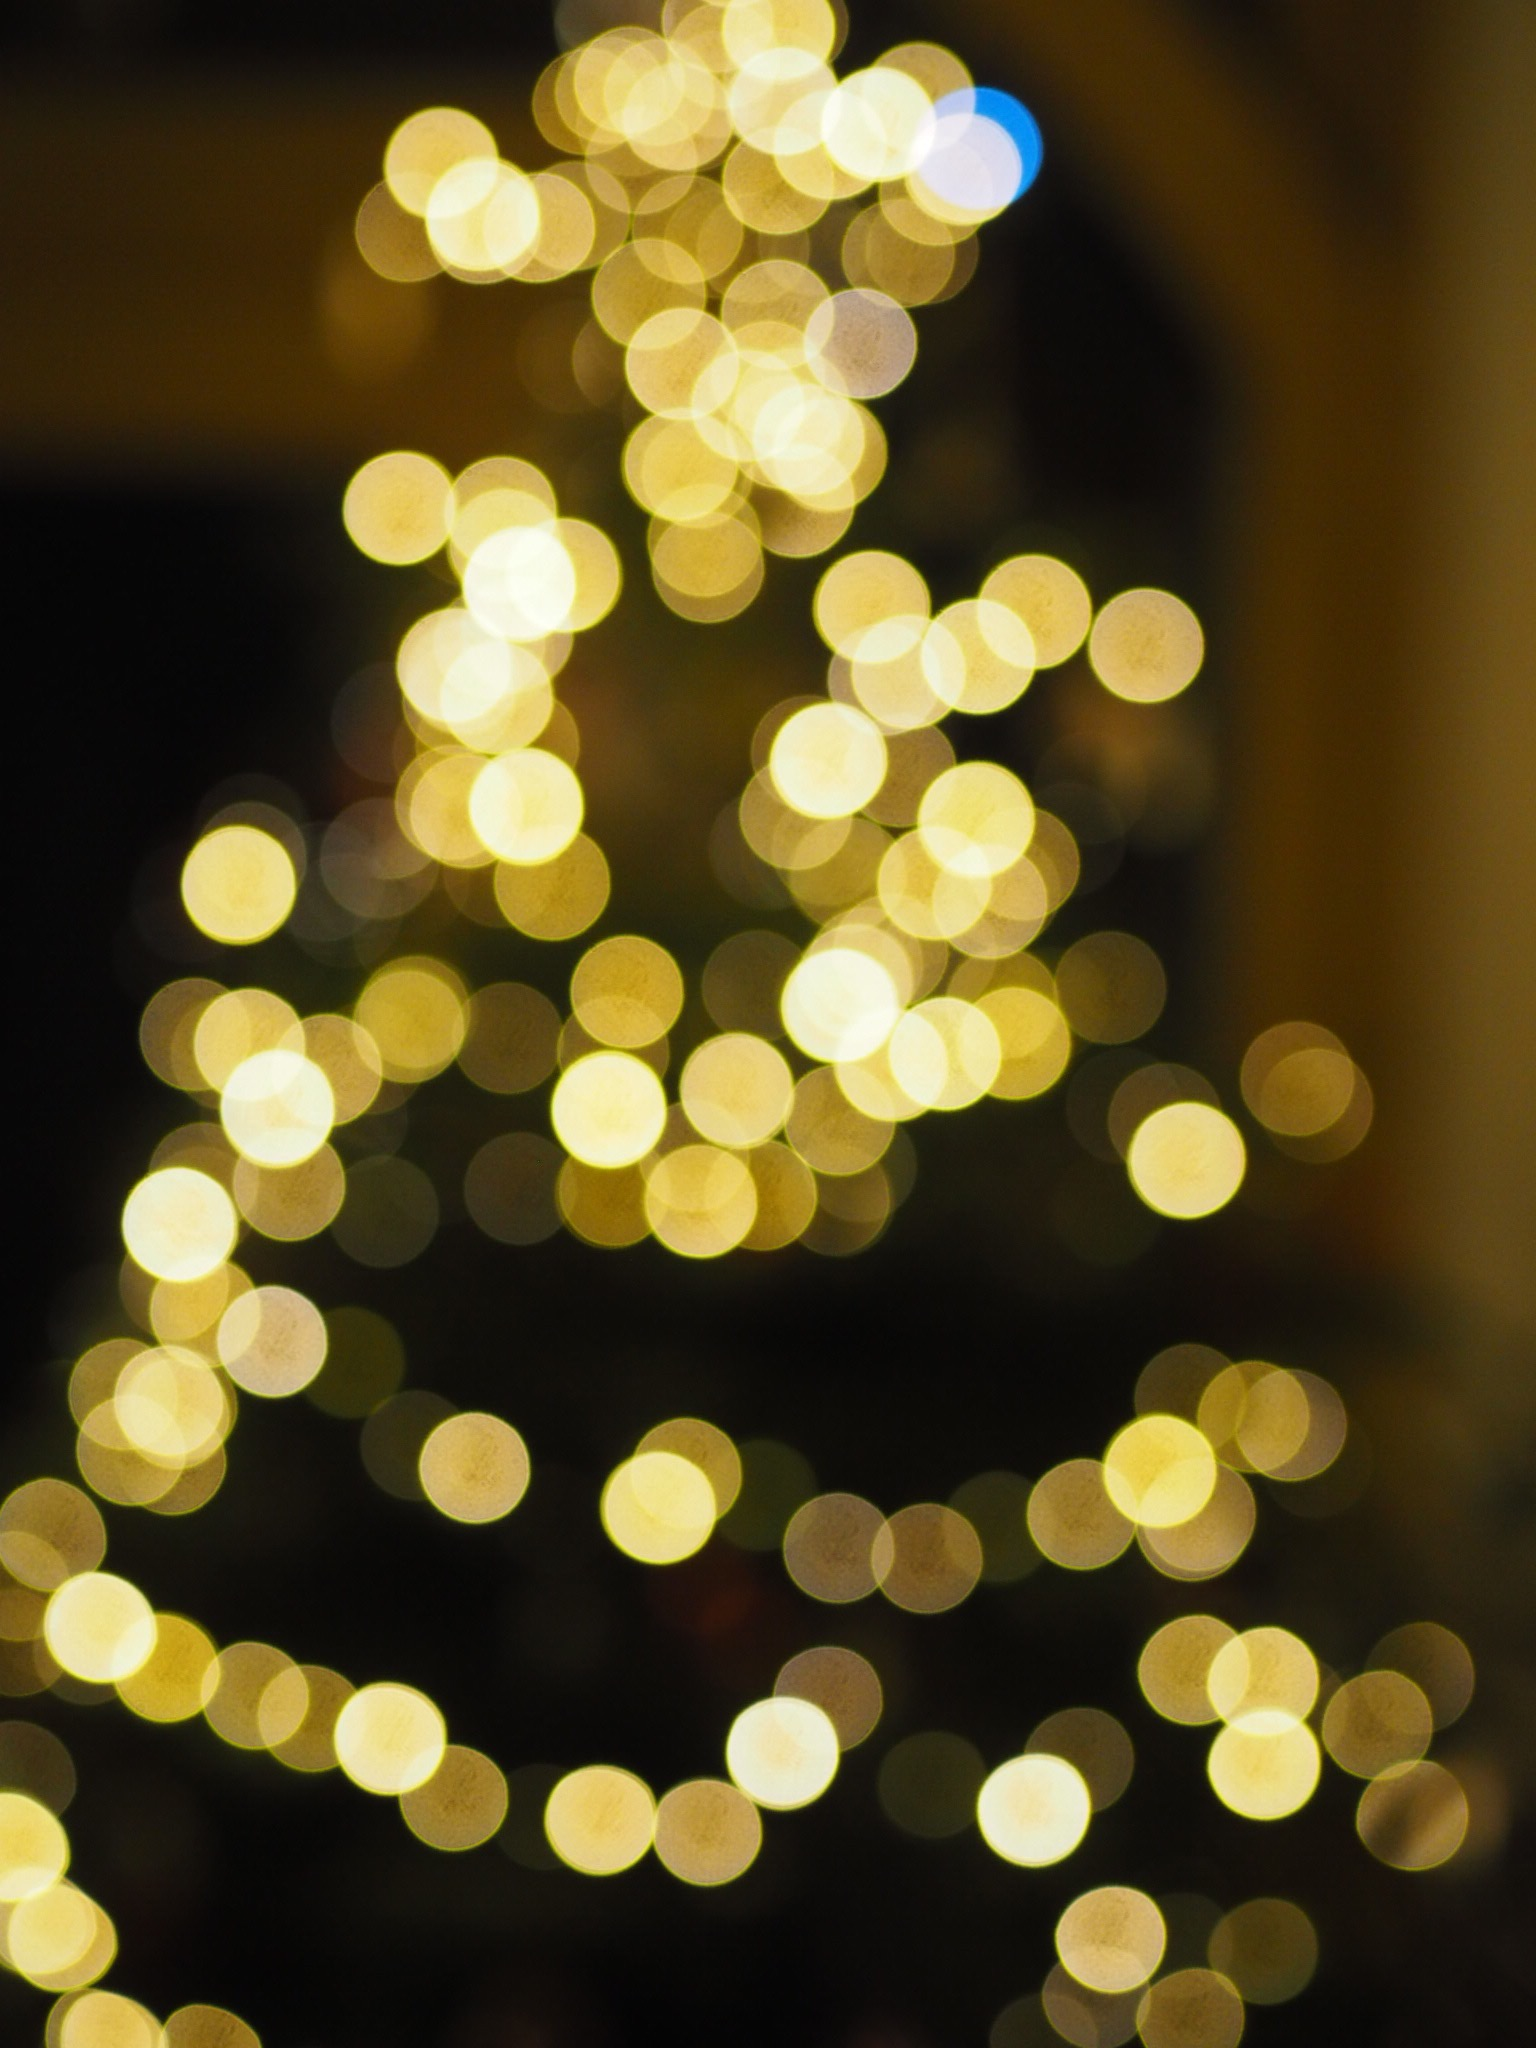 10 favourite things about Christmas